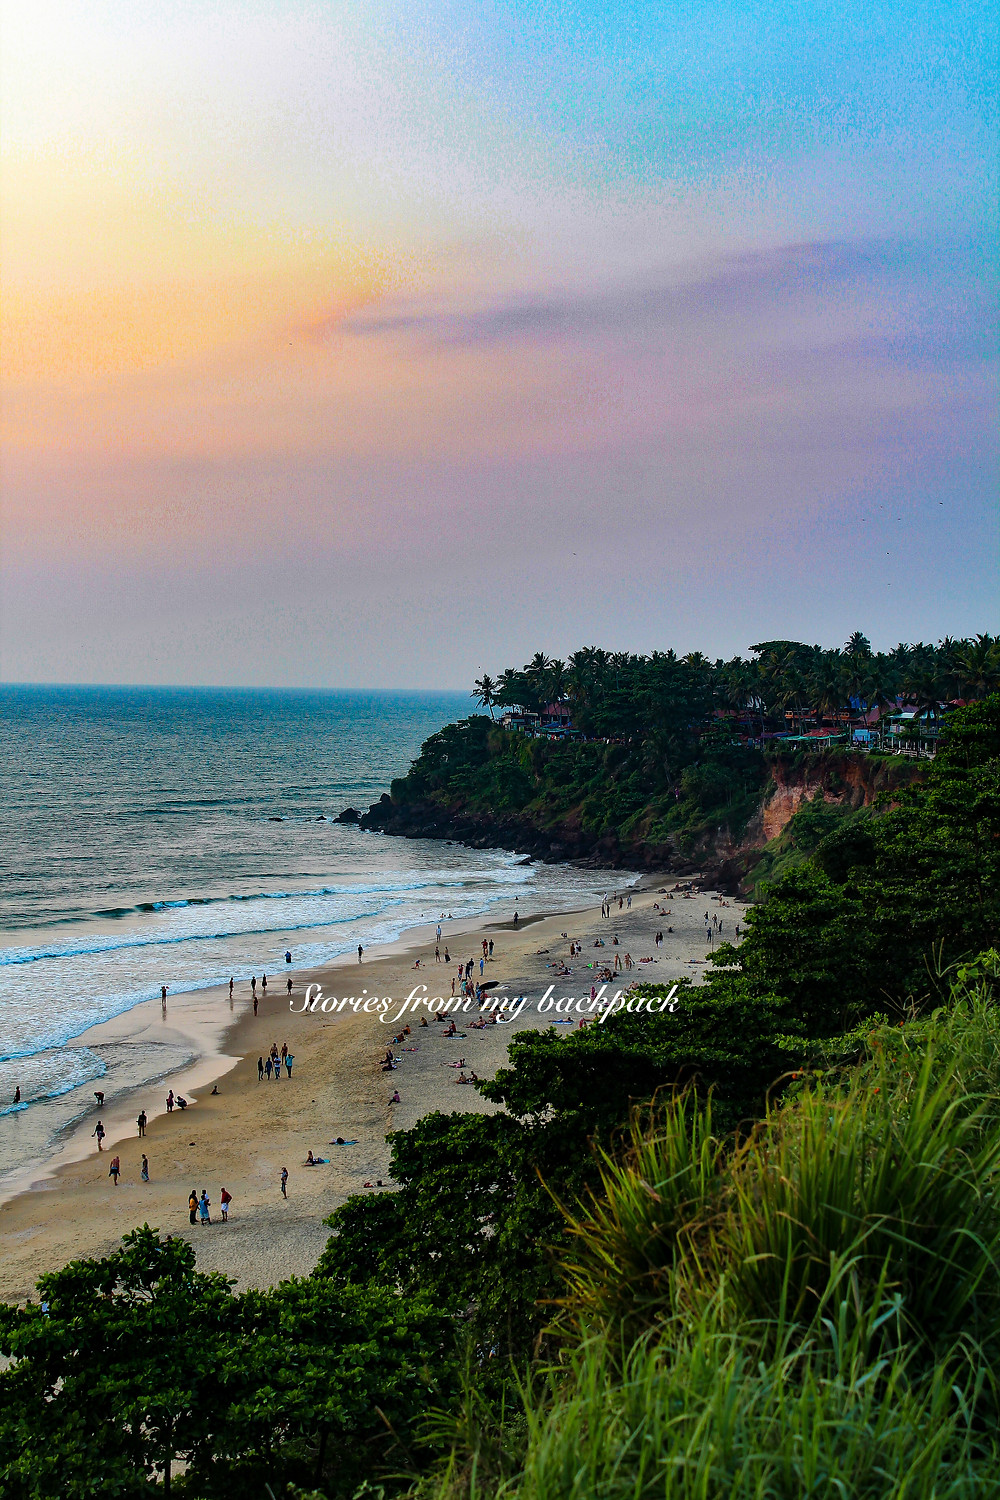 varkala cliff, varkala helipad, varkala things to do, varkala yoga, varkala shopping, varkala restaurants